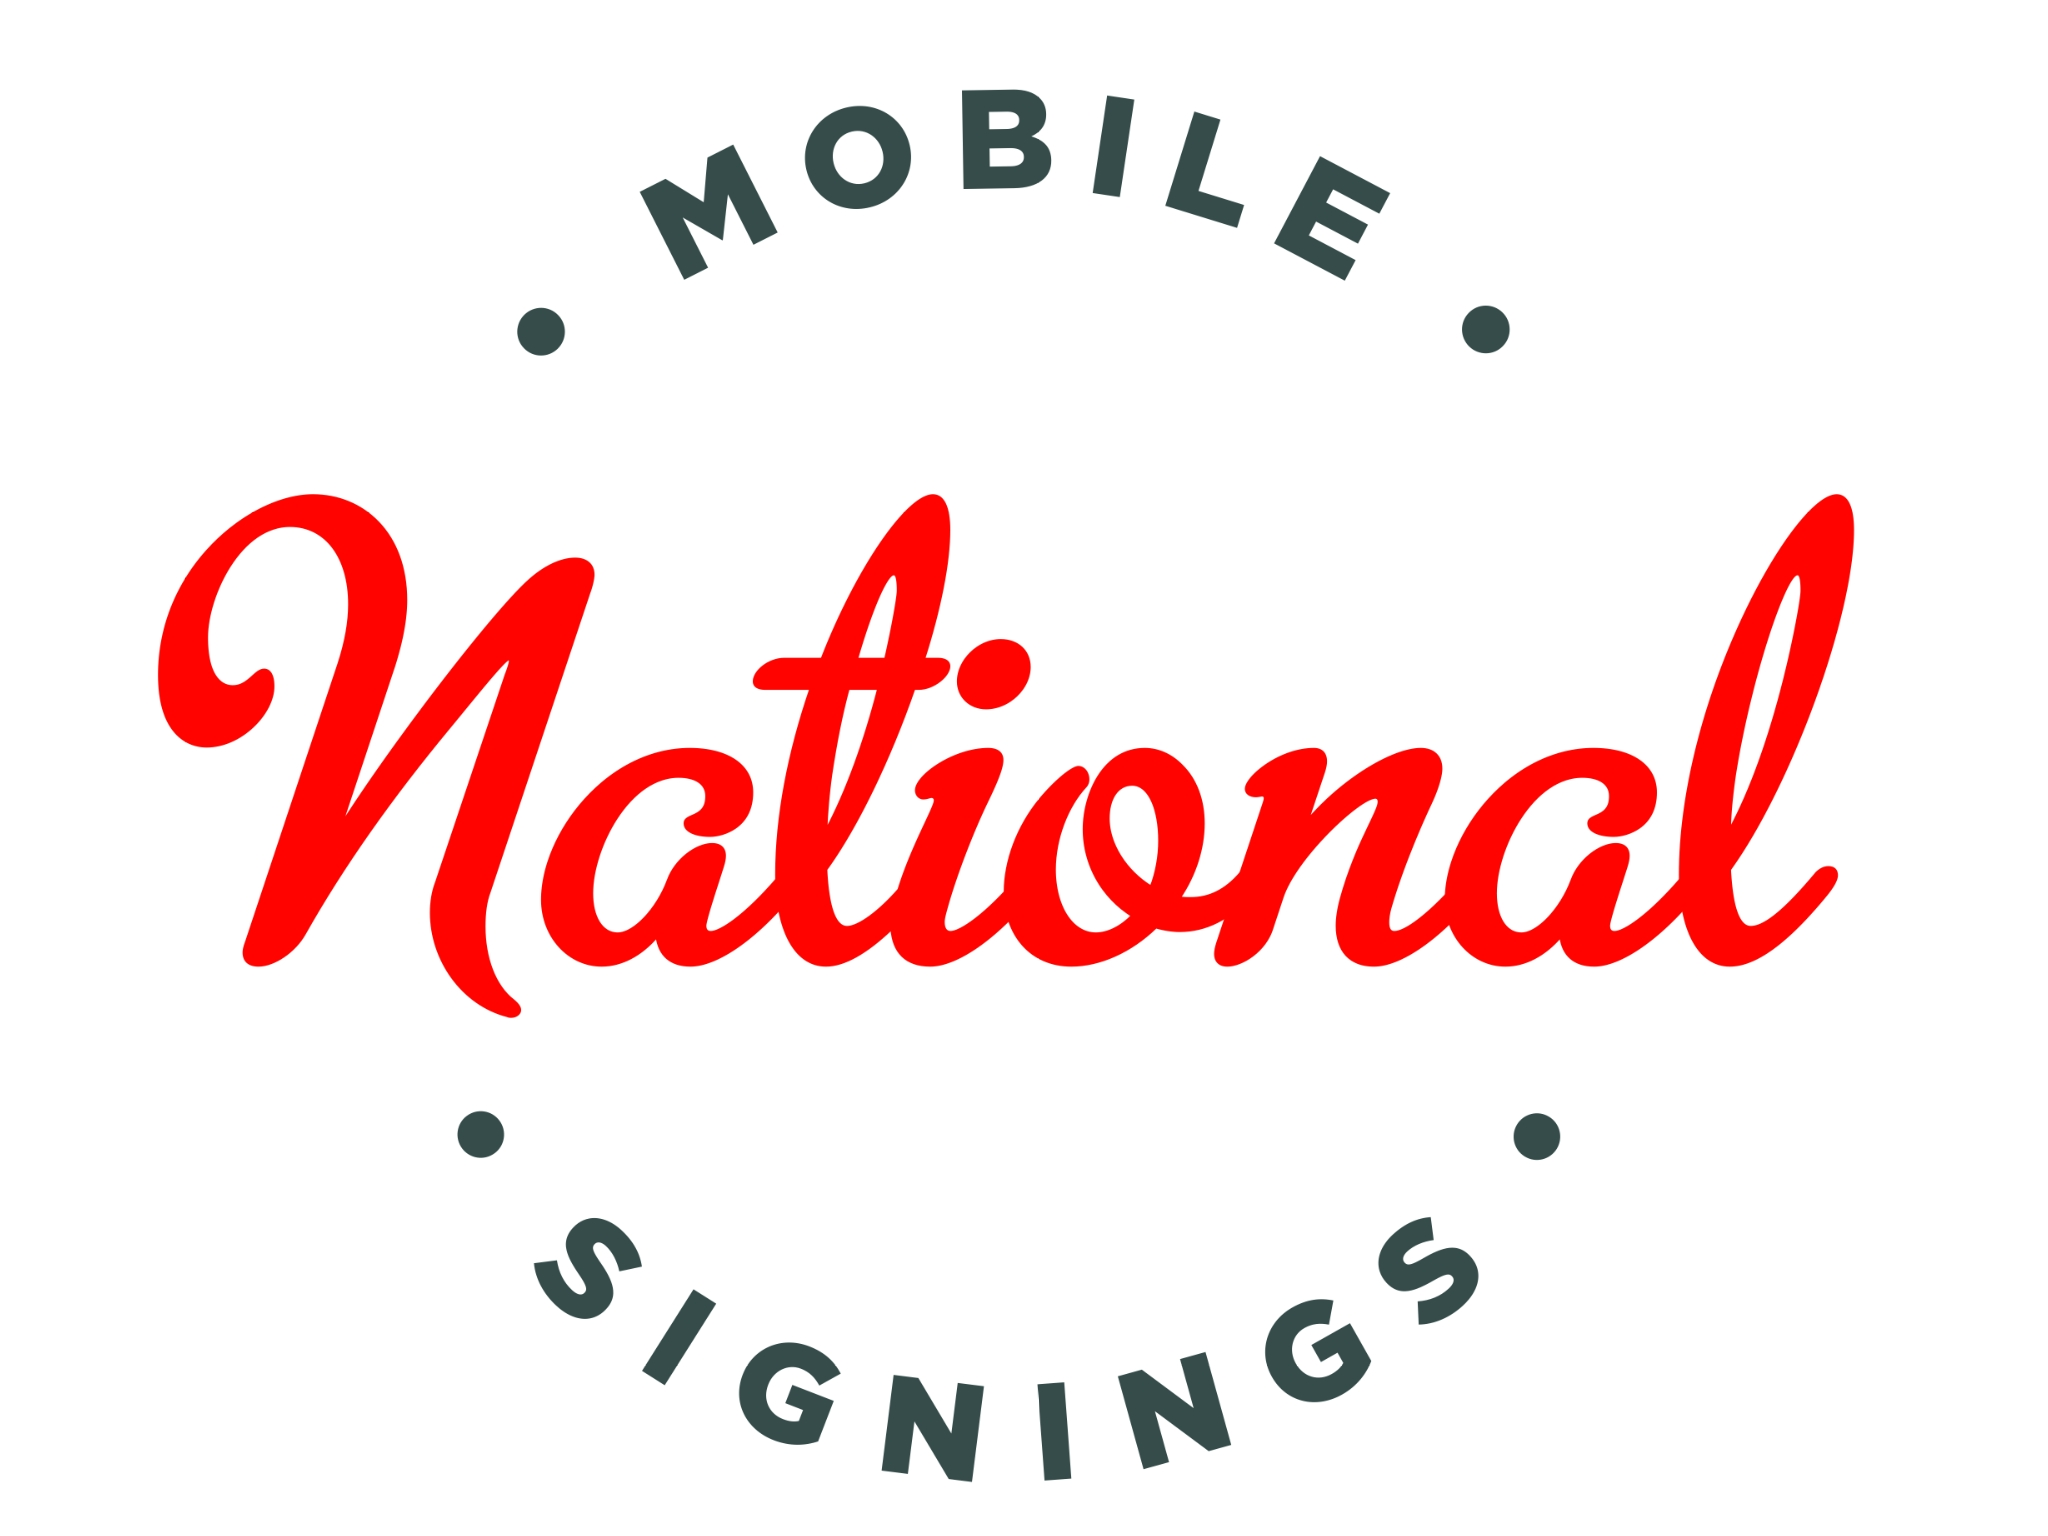 National Mobile Signings Inc. - ad image